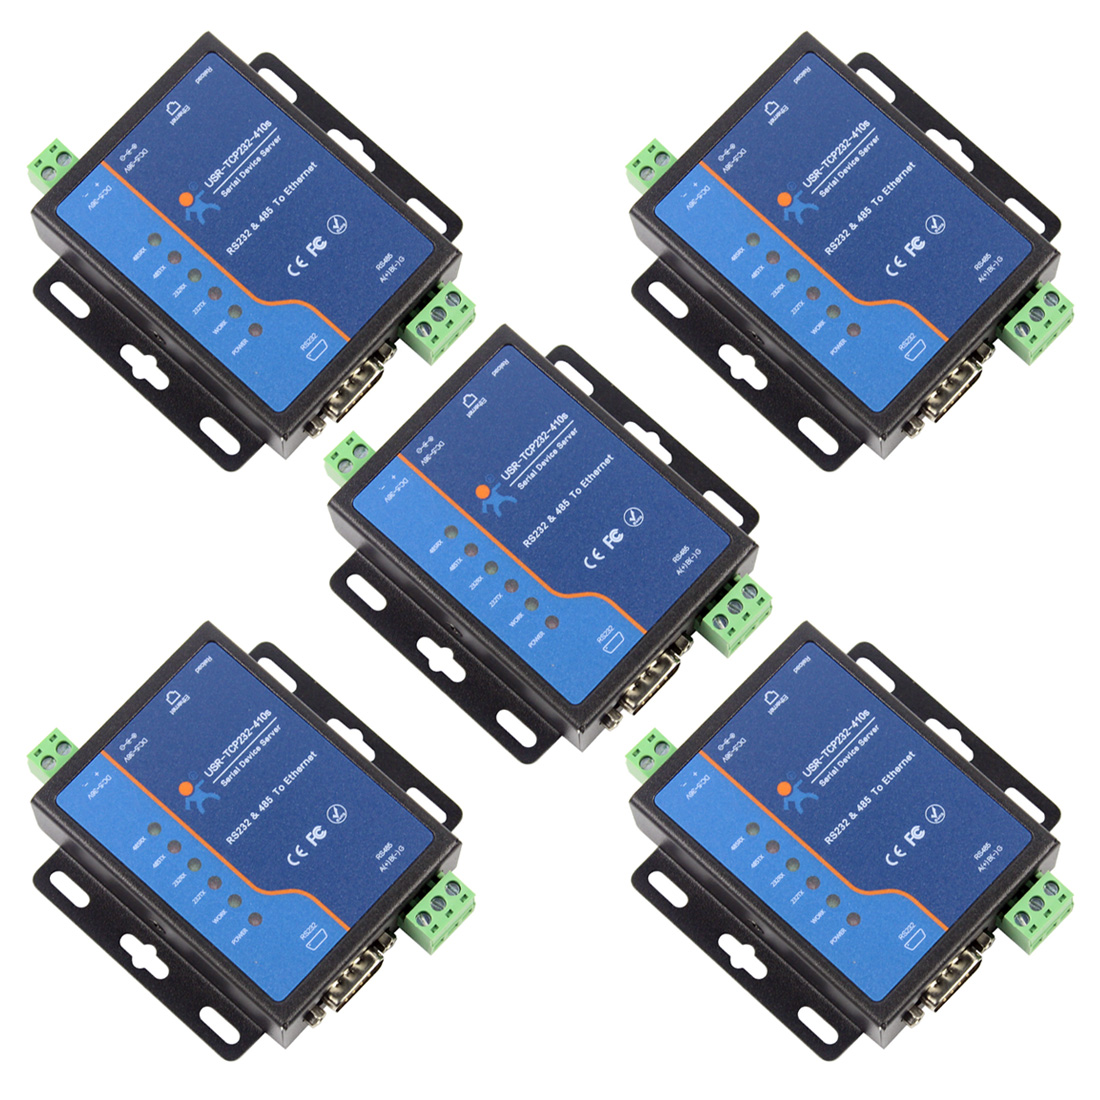 Q18039-5 5PCS USR-TCP232-410S Terminal Power Supply RS232 RS485 To TCP/IP Converter Serial Ethernet Serial Device Server